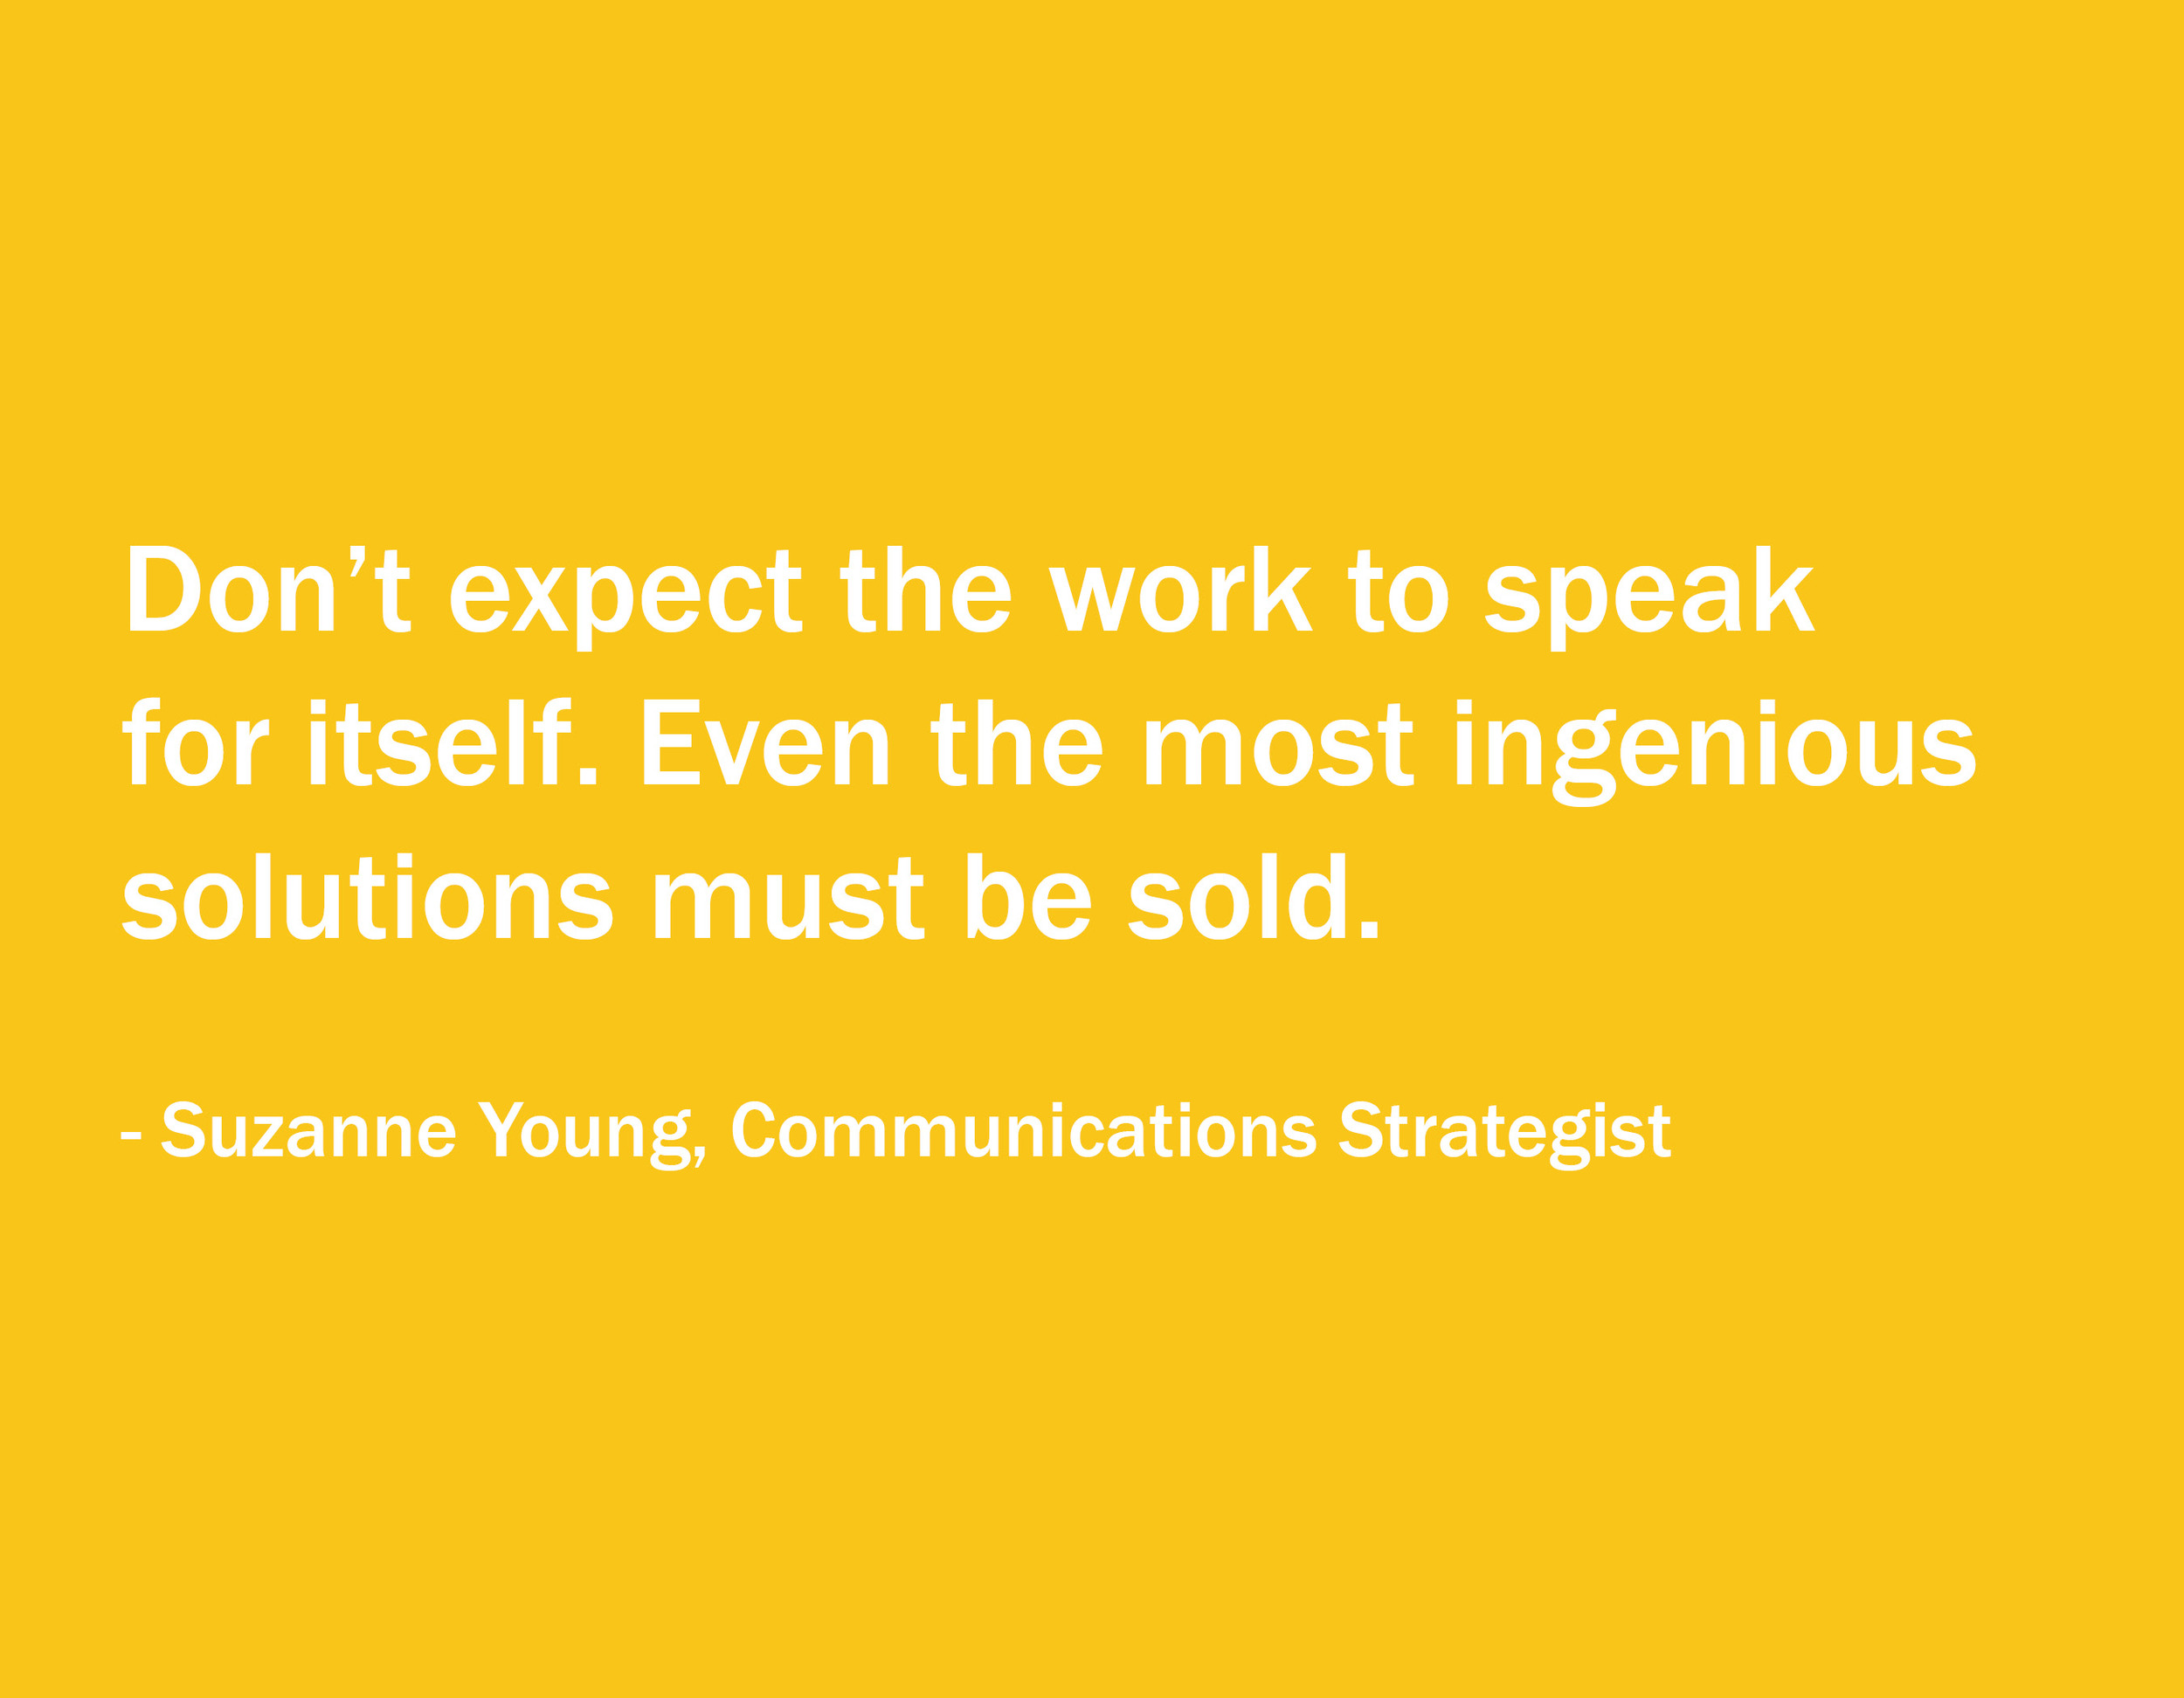 quote_suzanne young